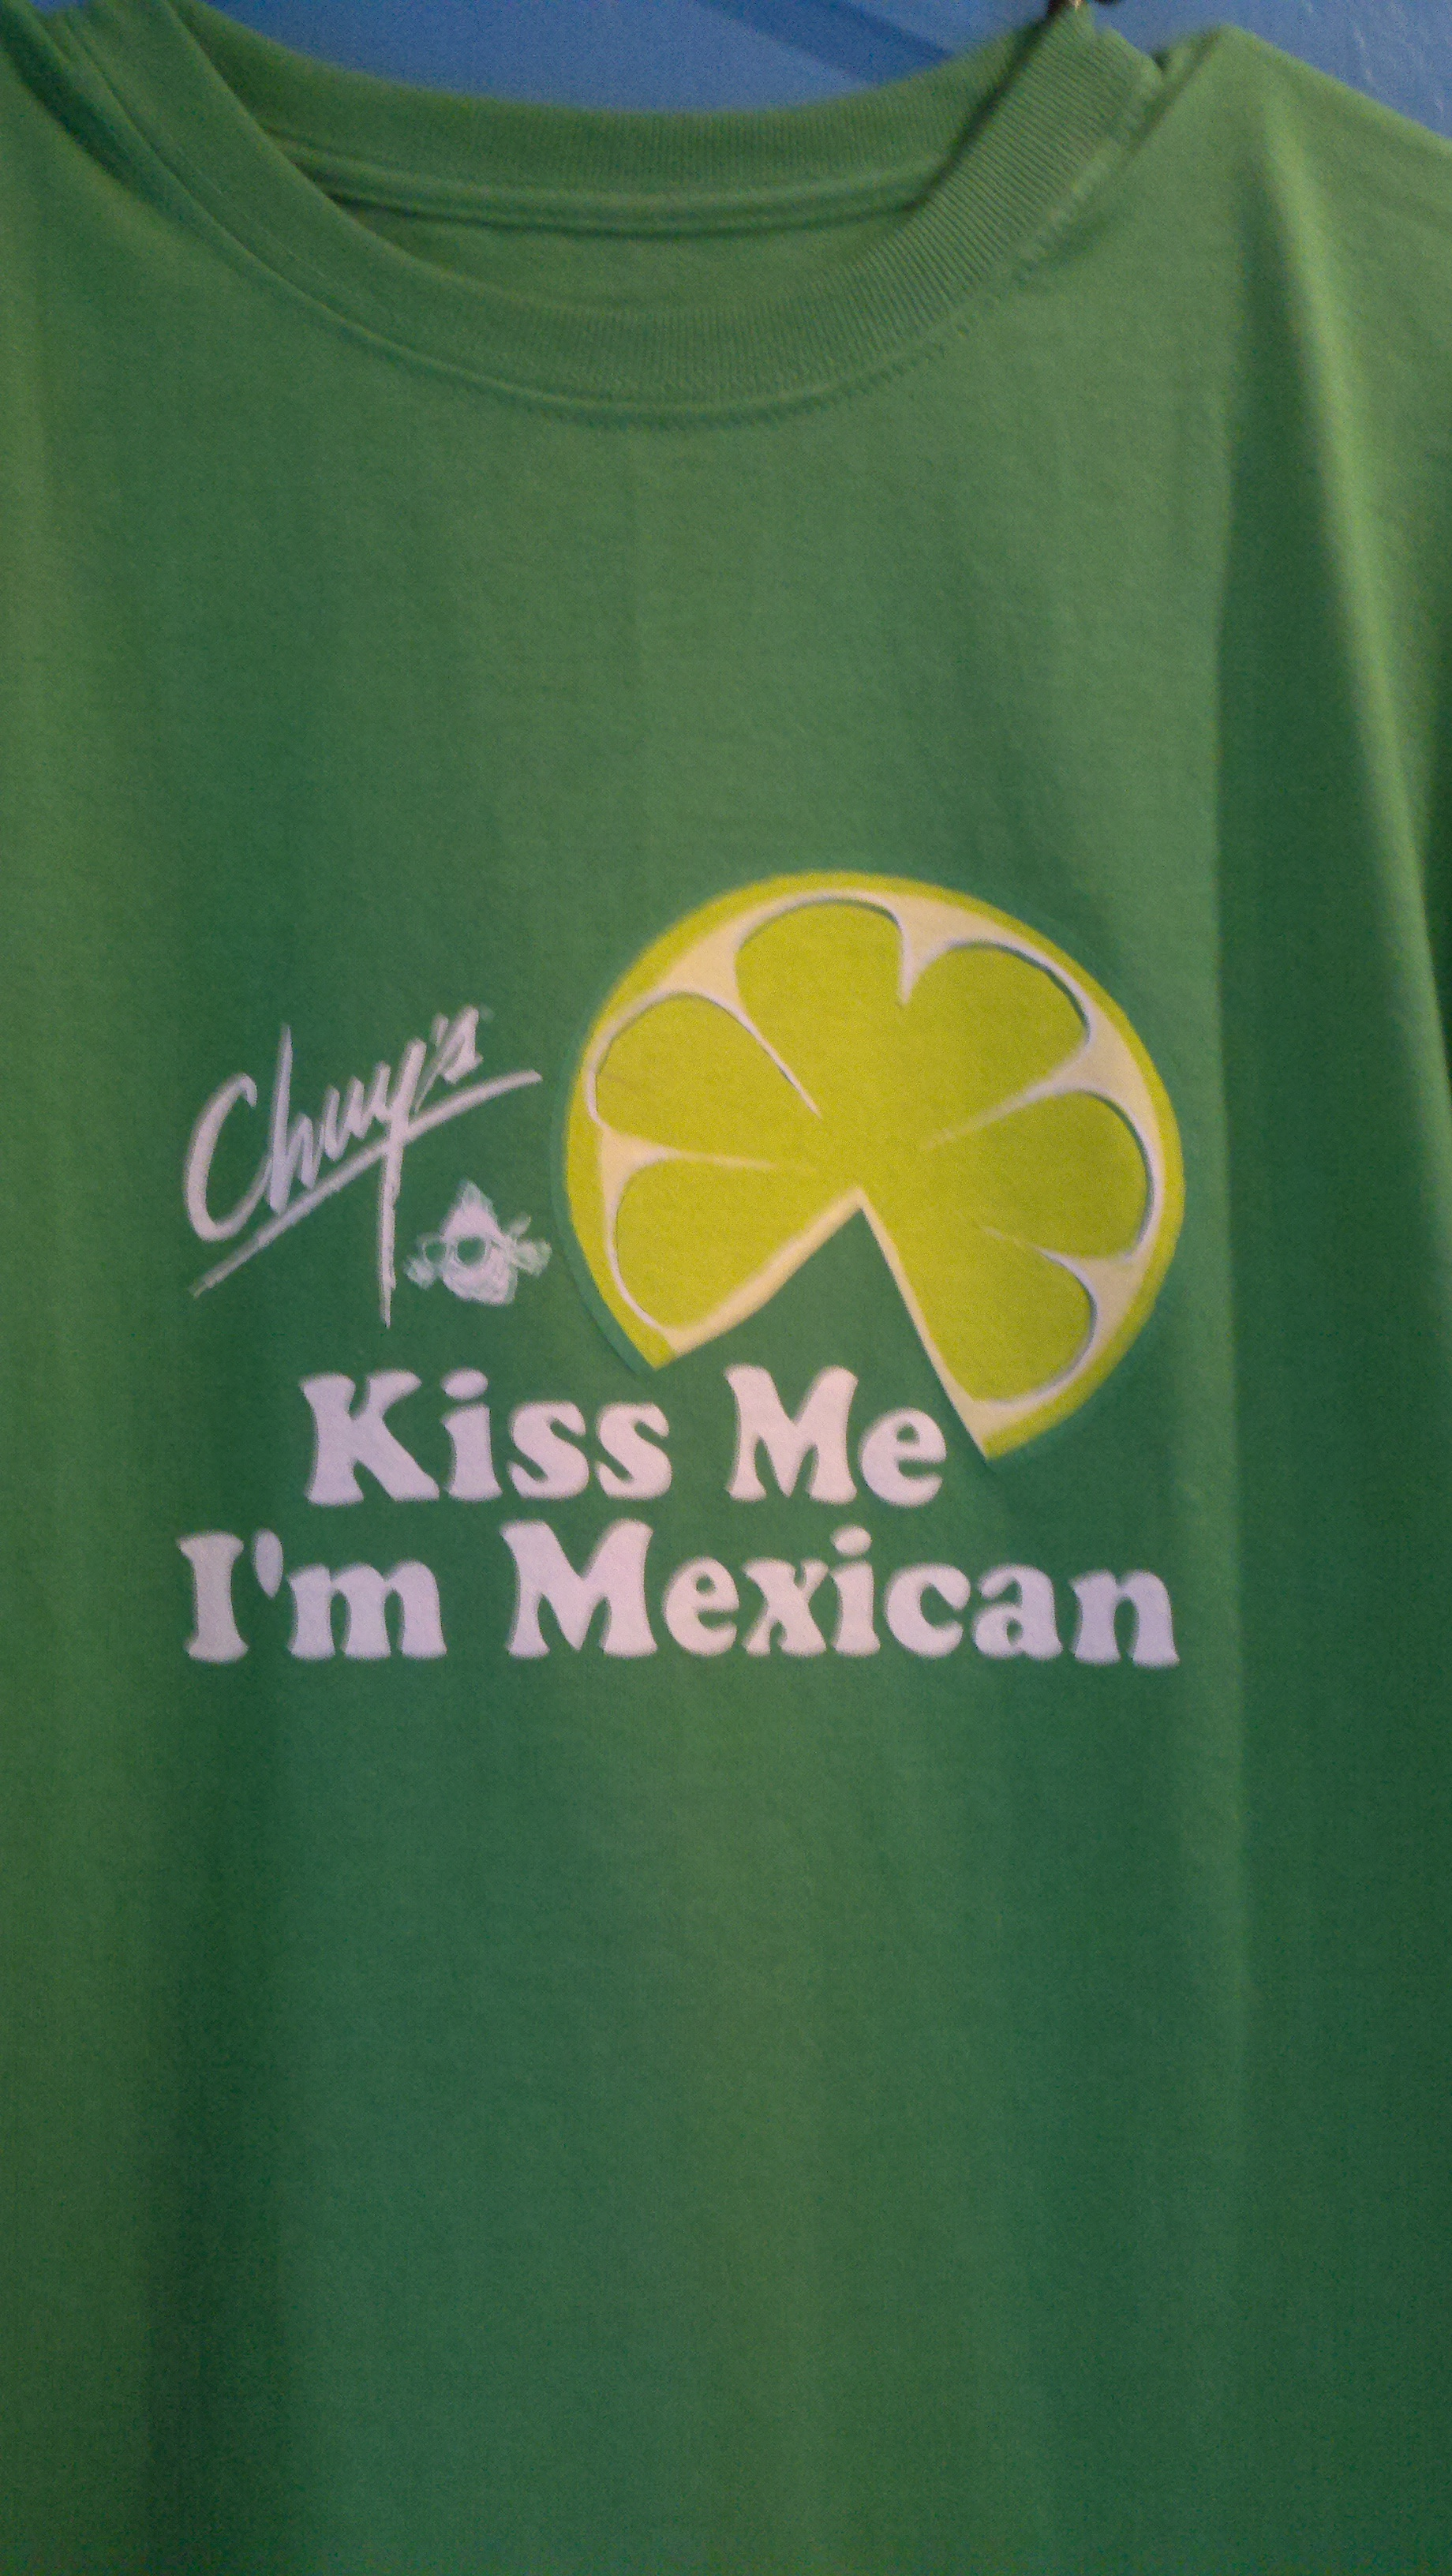 Dallas T-Shirt Printing: Chuy's Makes it an Art Form | The LogoVore